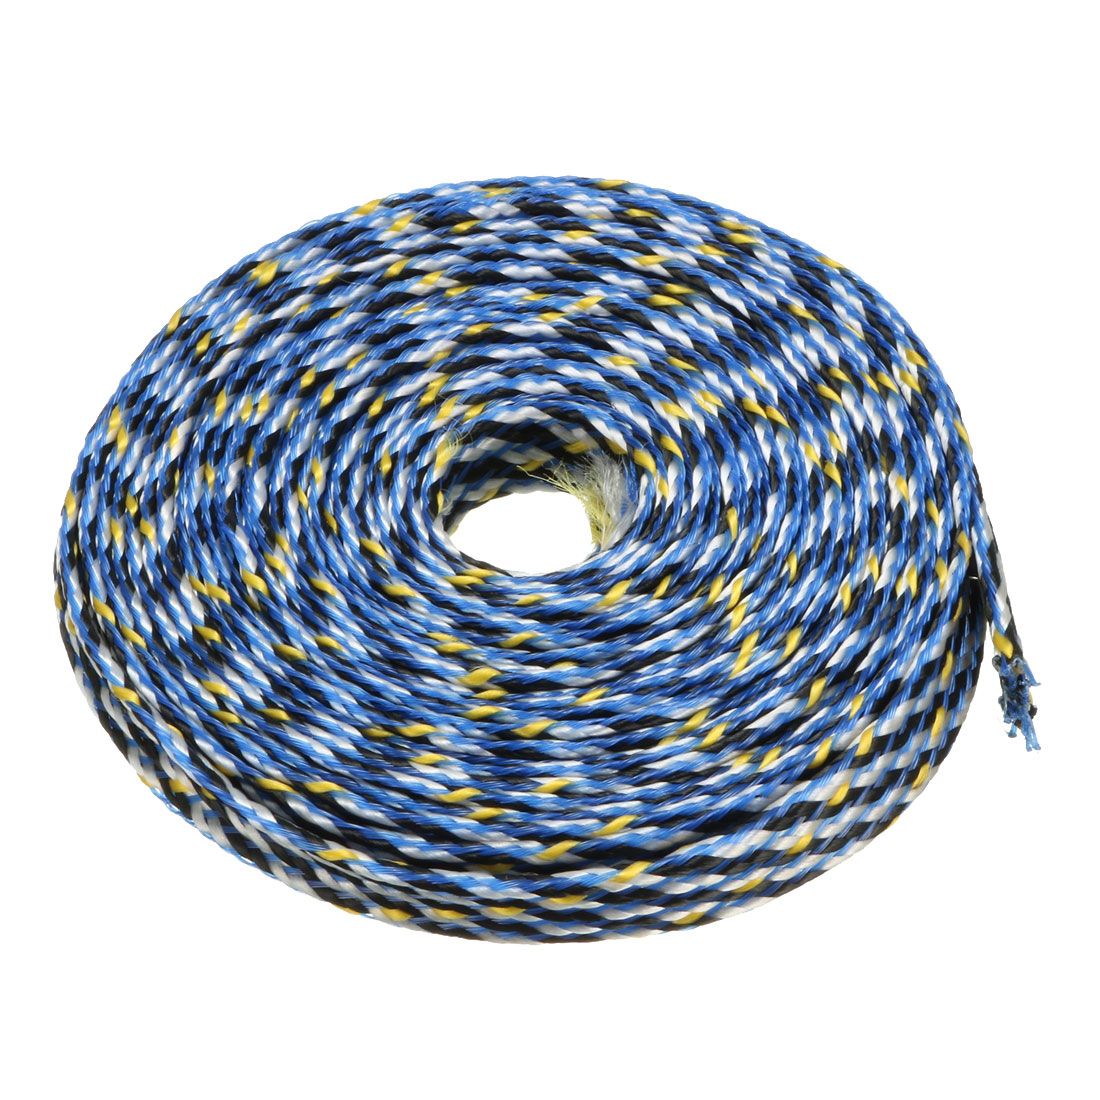 12mm PET Cable Wire Wrap Expandable Braided Sleeving Blue Yellow 5M Length